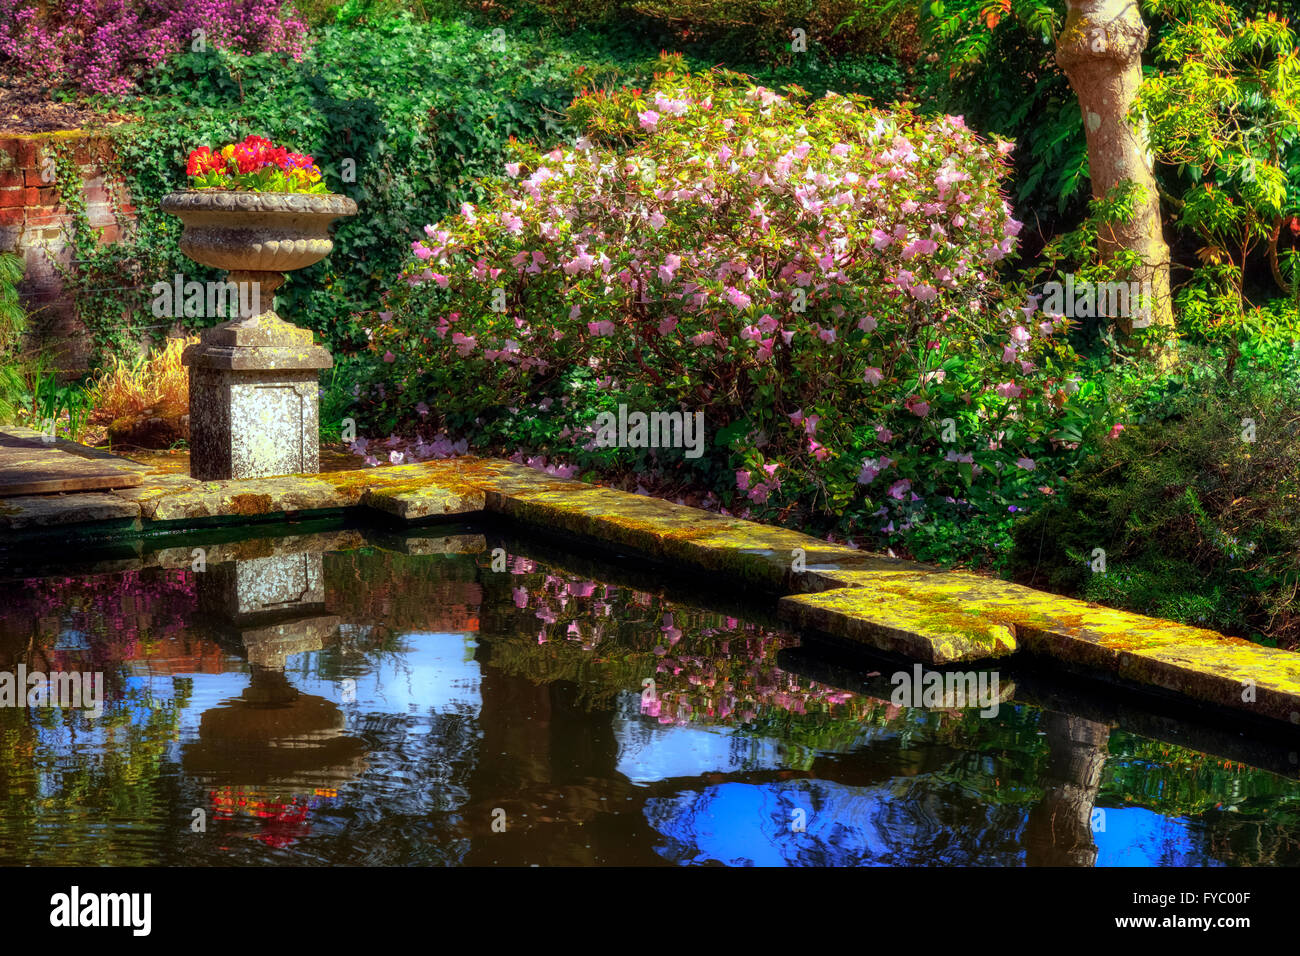 versunkene Garten in Hursley, Hampshire, England, UK Stockbild